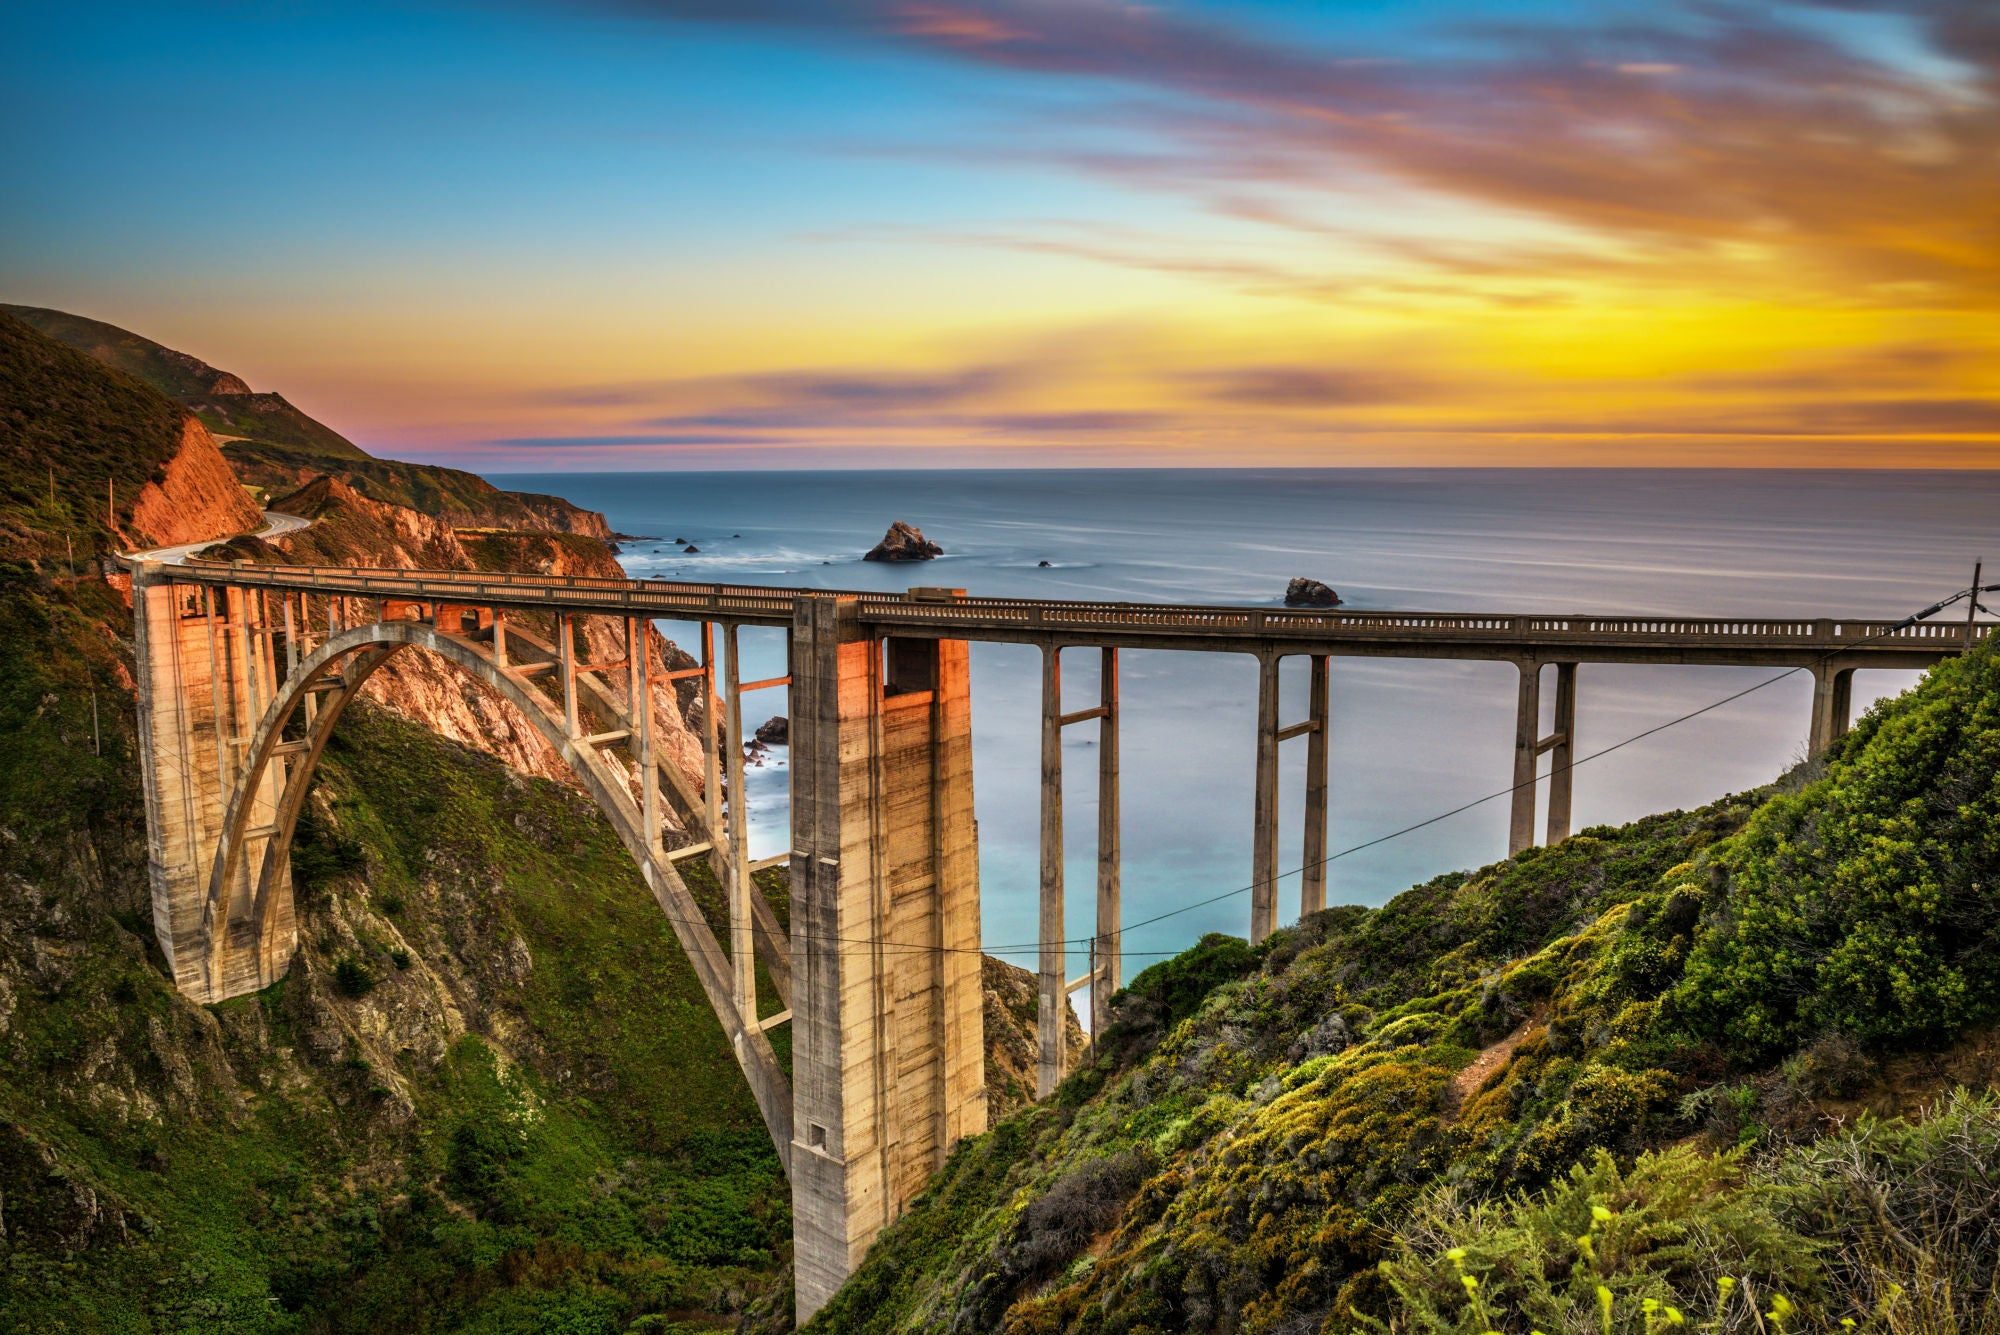 a 2018 guide to big sur camping: where to go and what to do